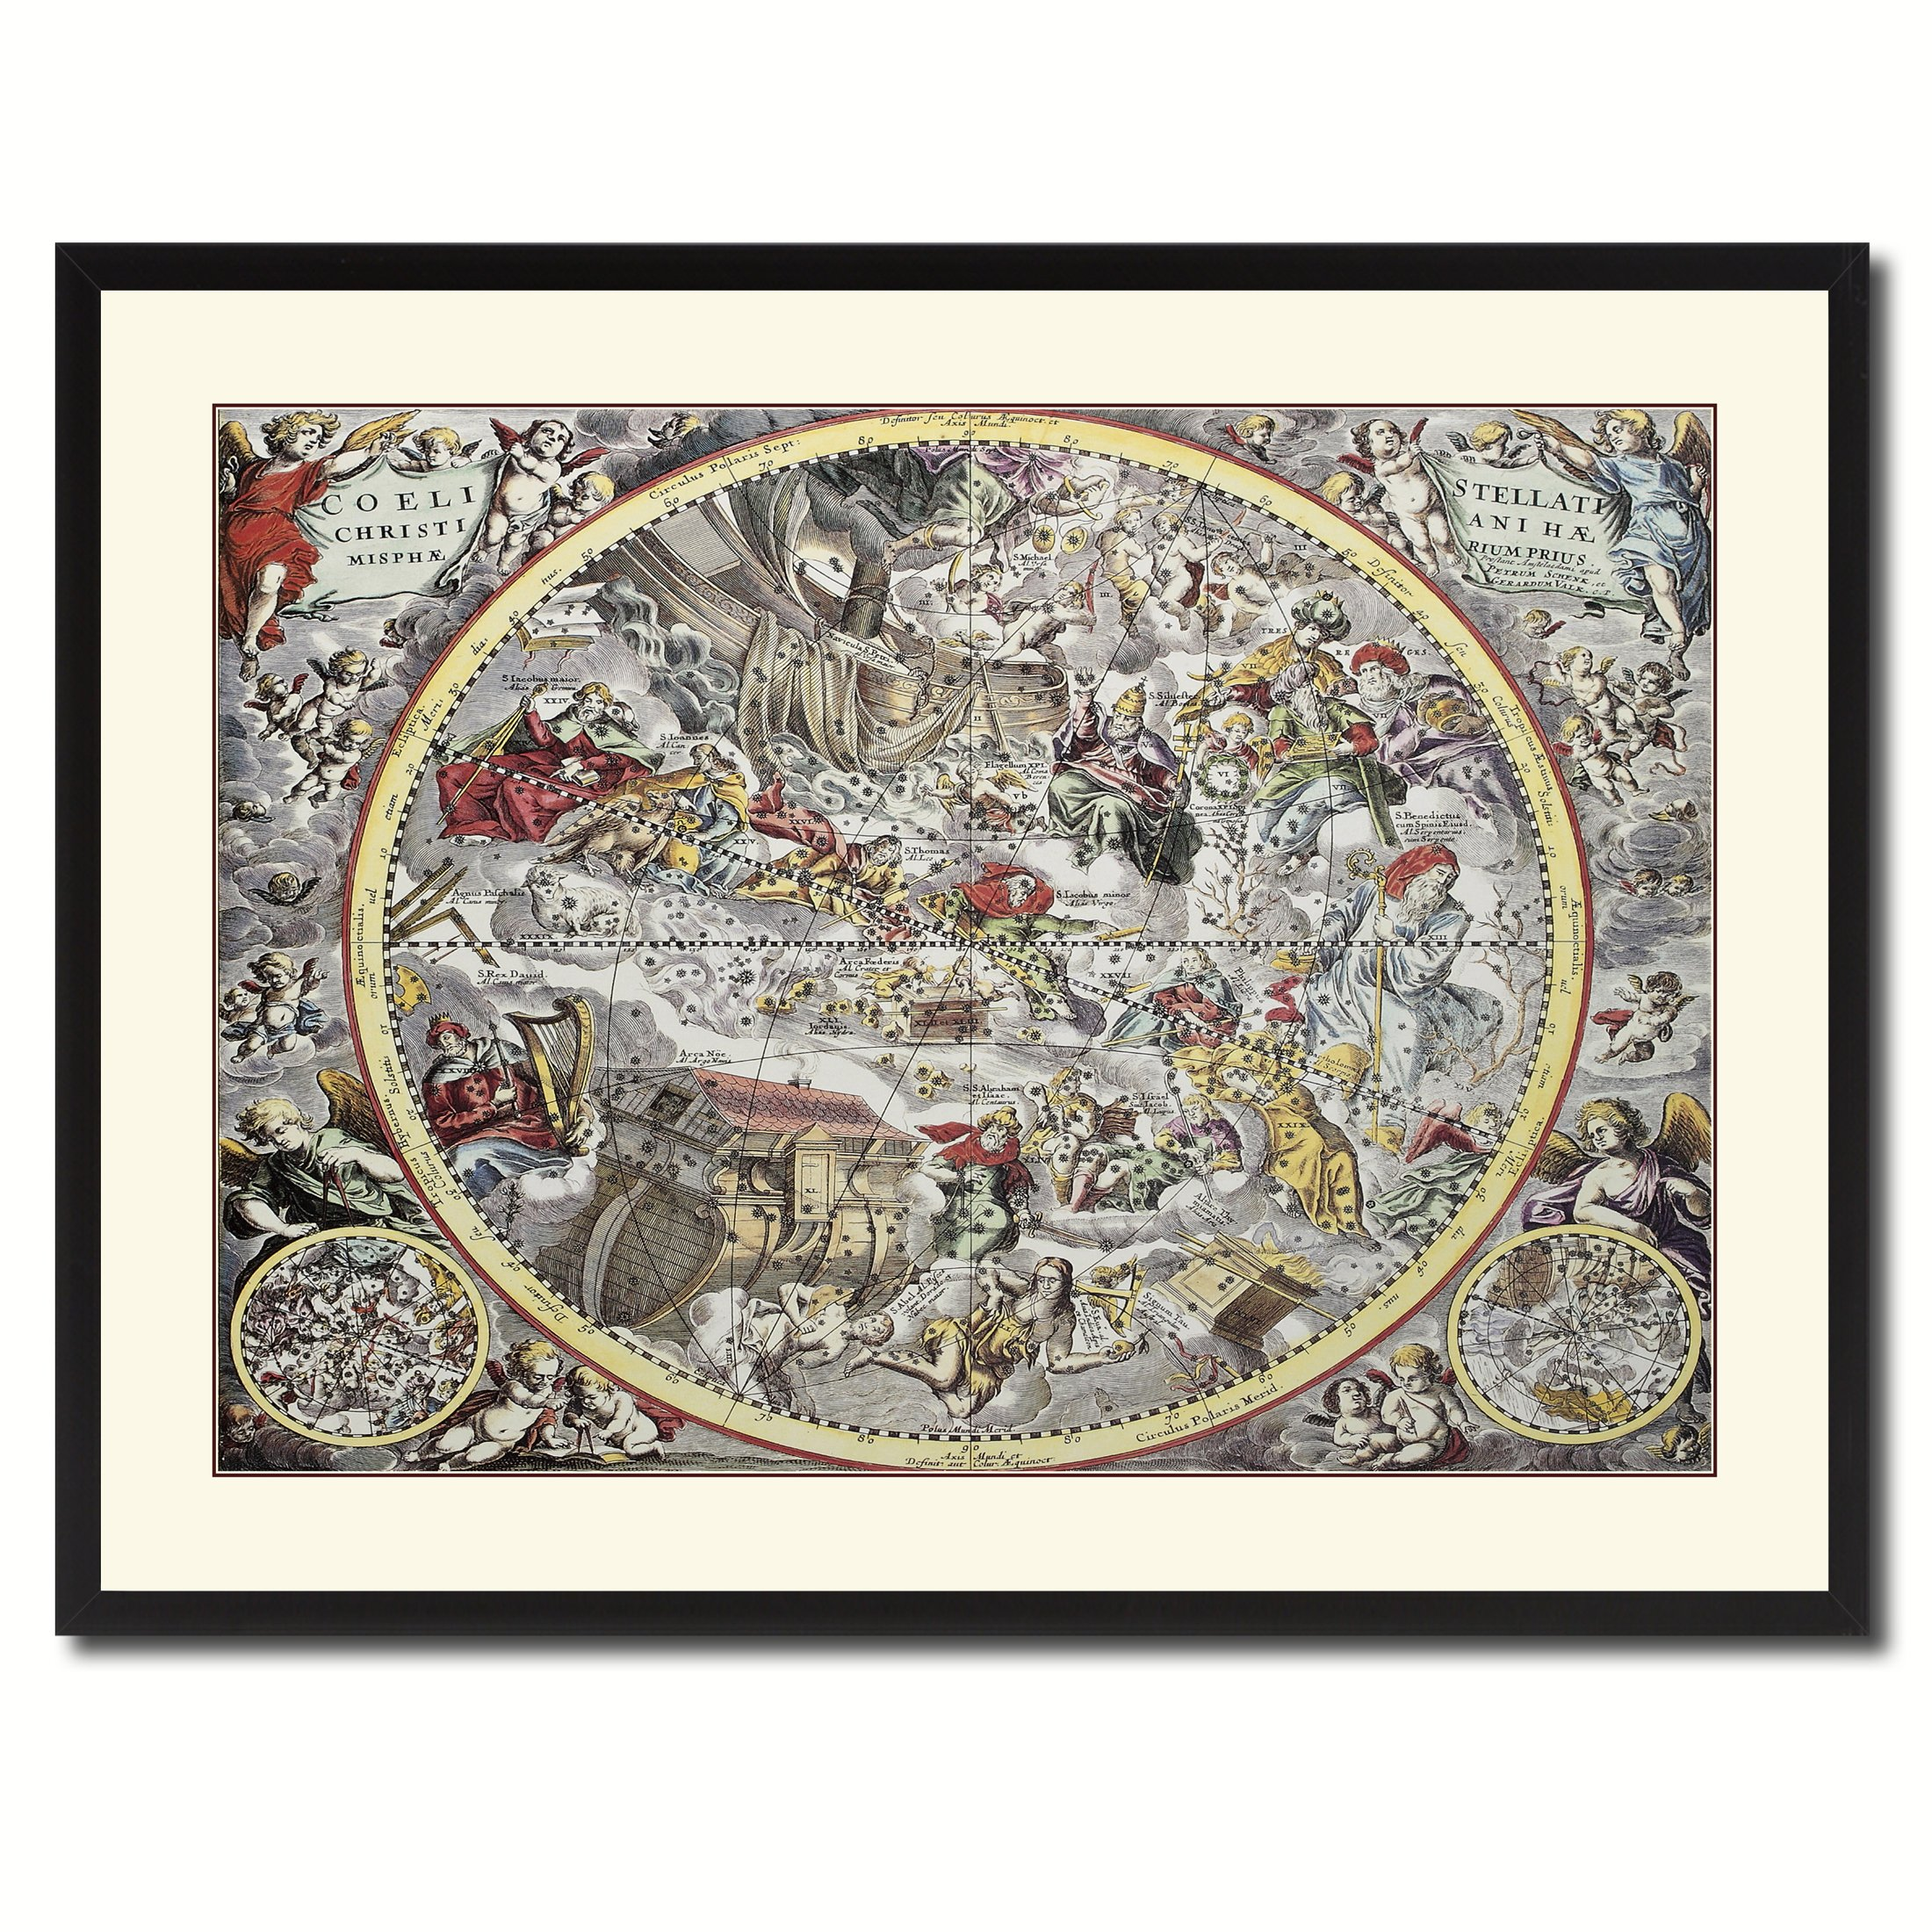 Christian Celestial Hemisphere Vintage Antique Map 36097 Print on Canvas with Picture Frame Gift Ideas Office Décor Livingroom Housewarming Birthday Black 28'' x 37'' by AllChalkboard